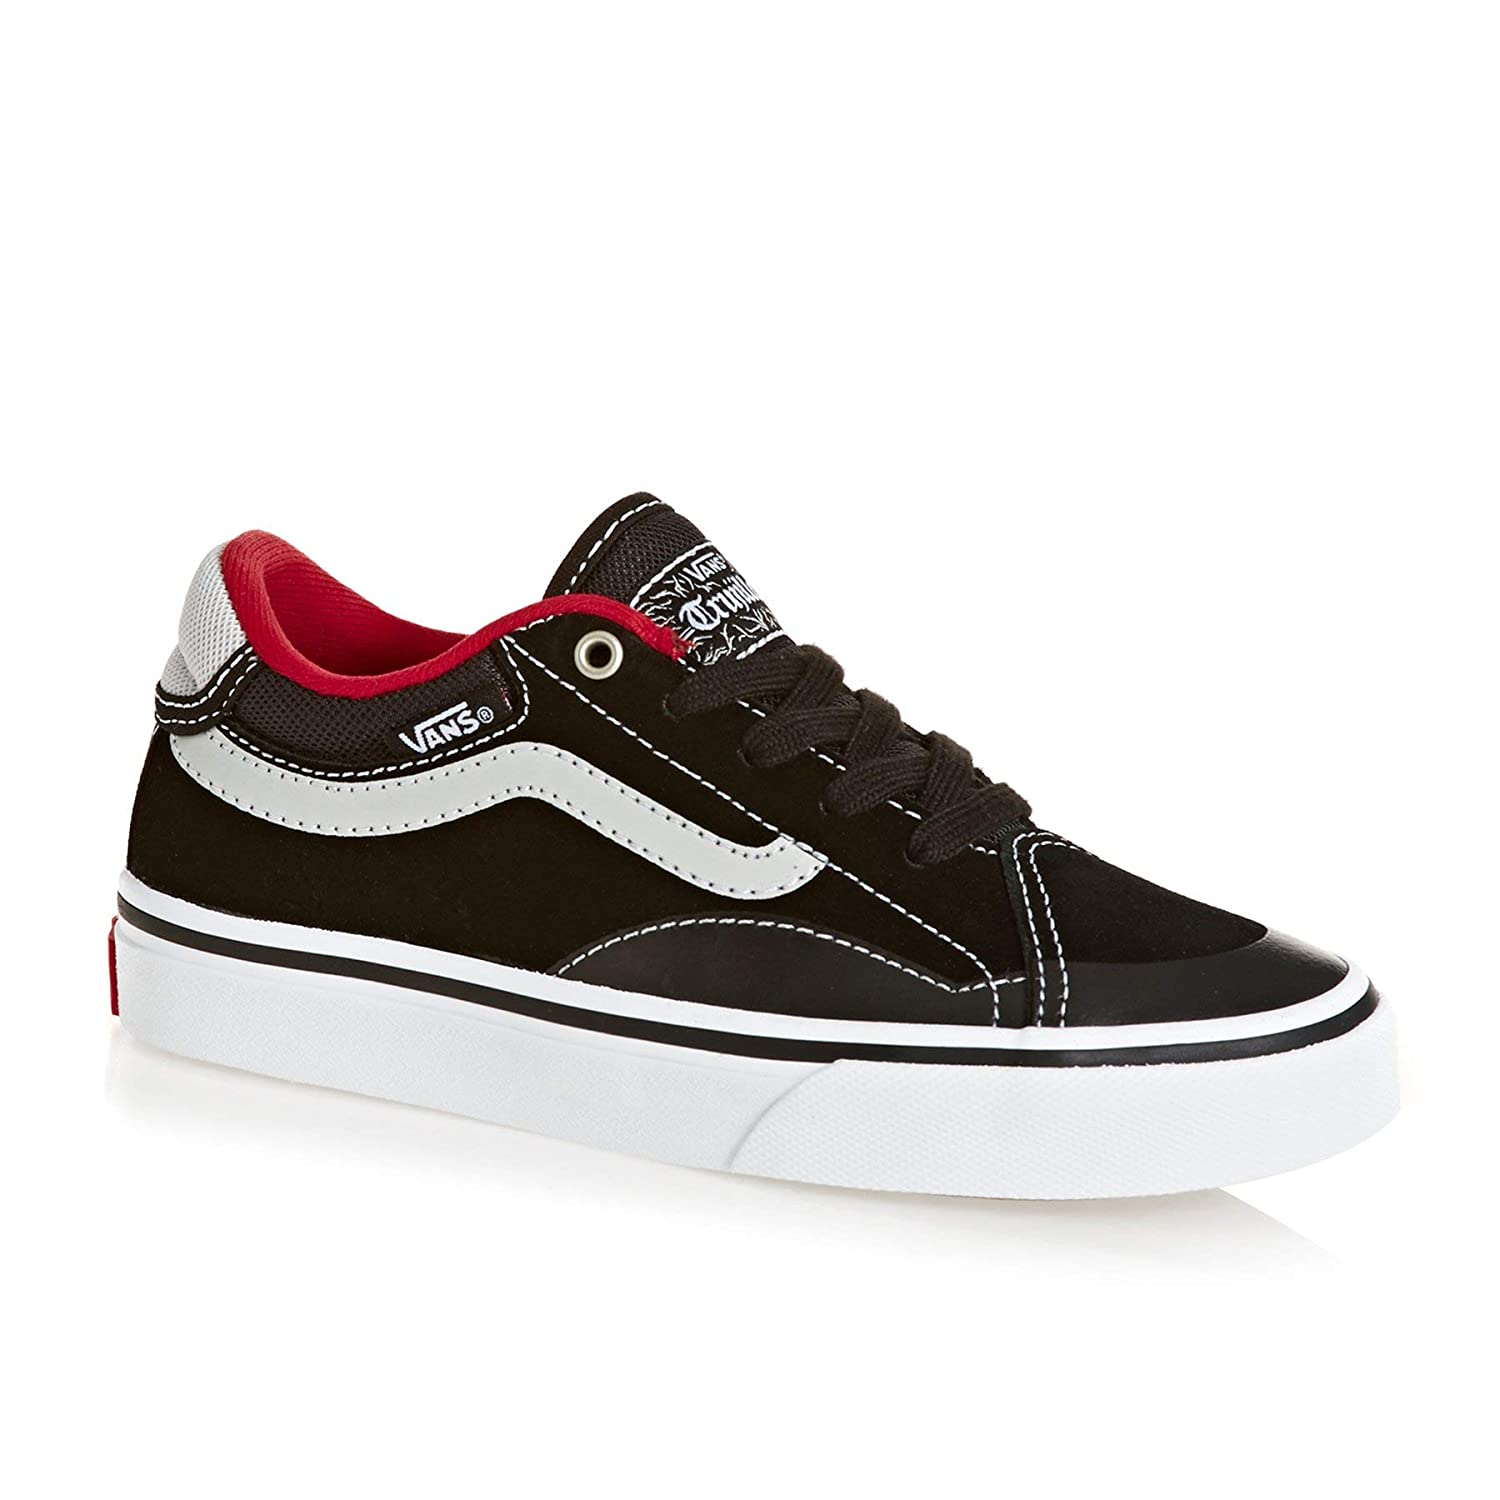 8271c7a0a6 Vans TNT Advanced Prototype Kids Shoes  Amazon.co.uk  Shoes   Bags